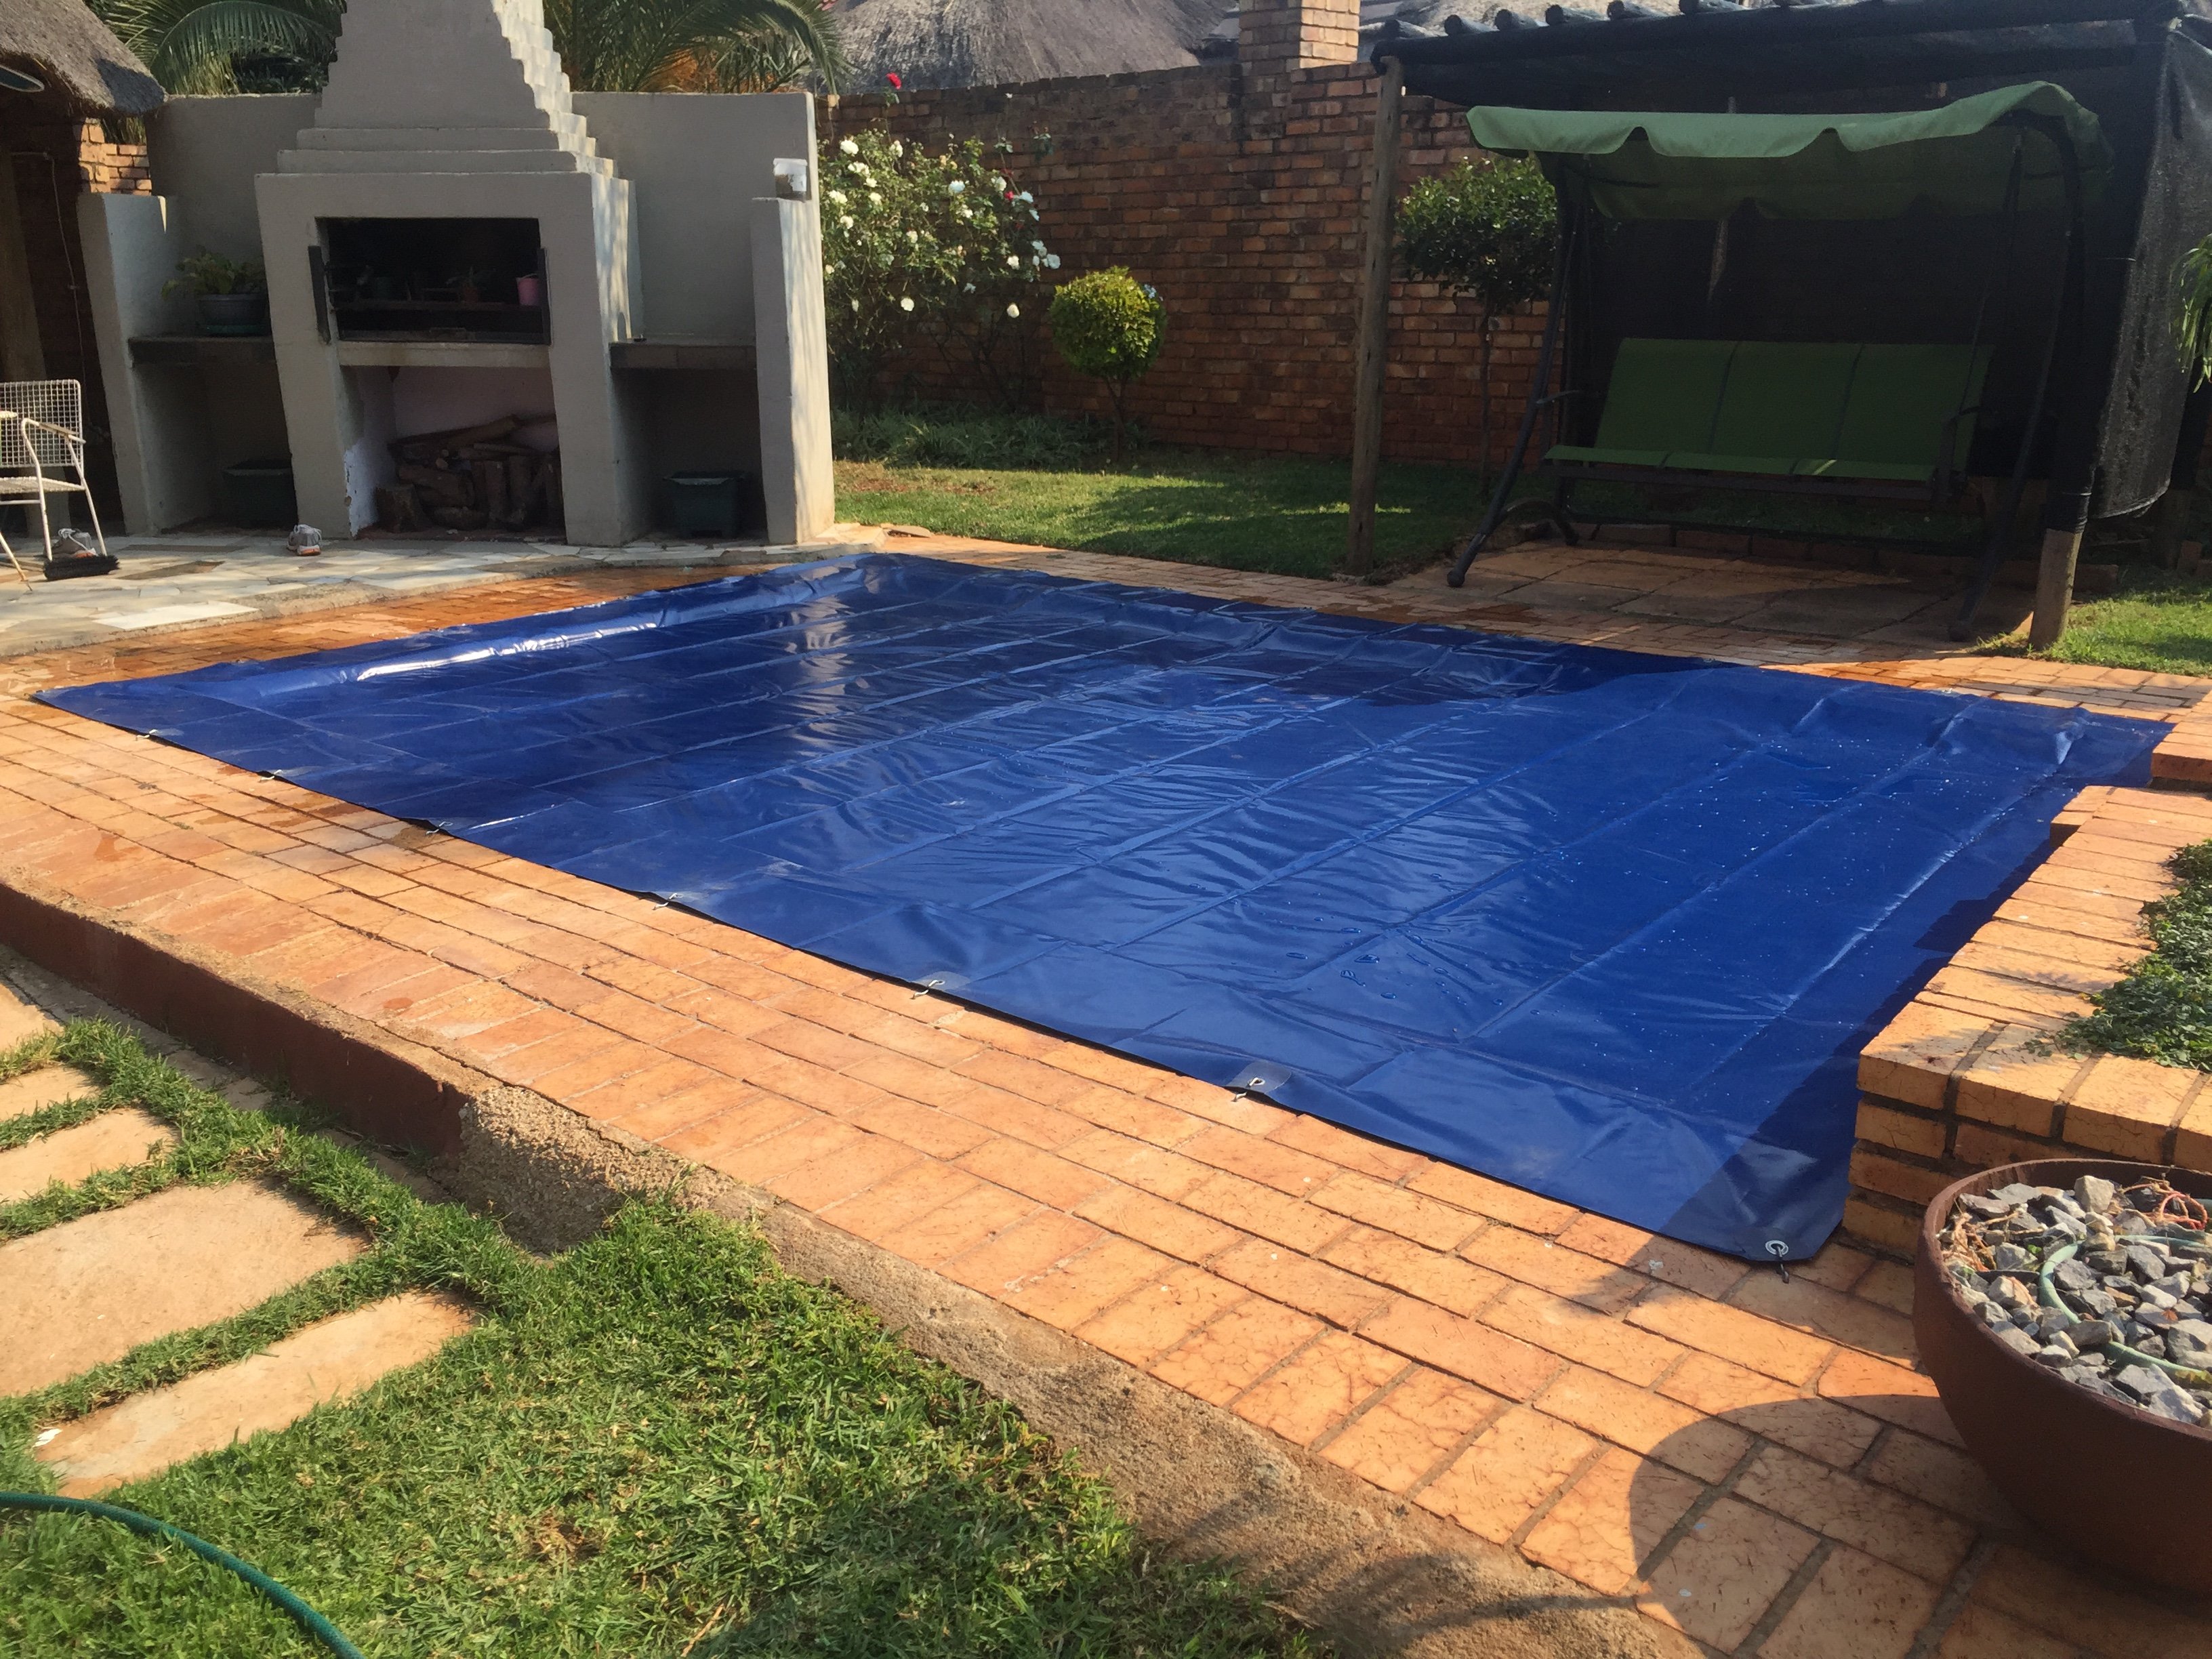 Pool Covers Tarps For Africa